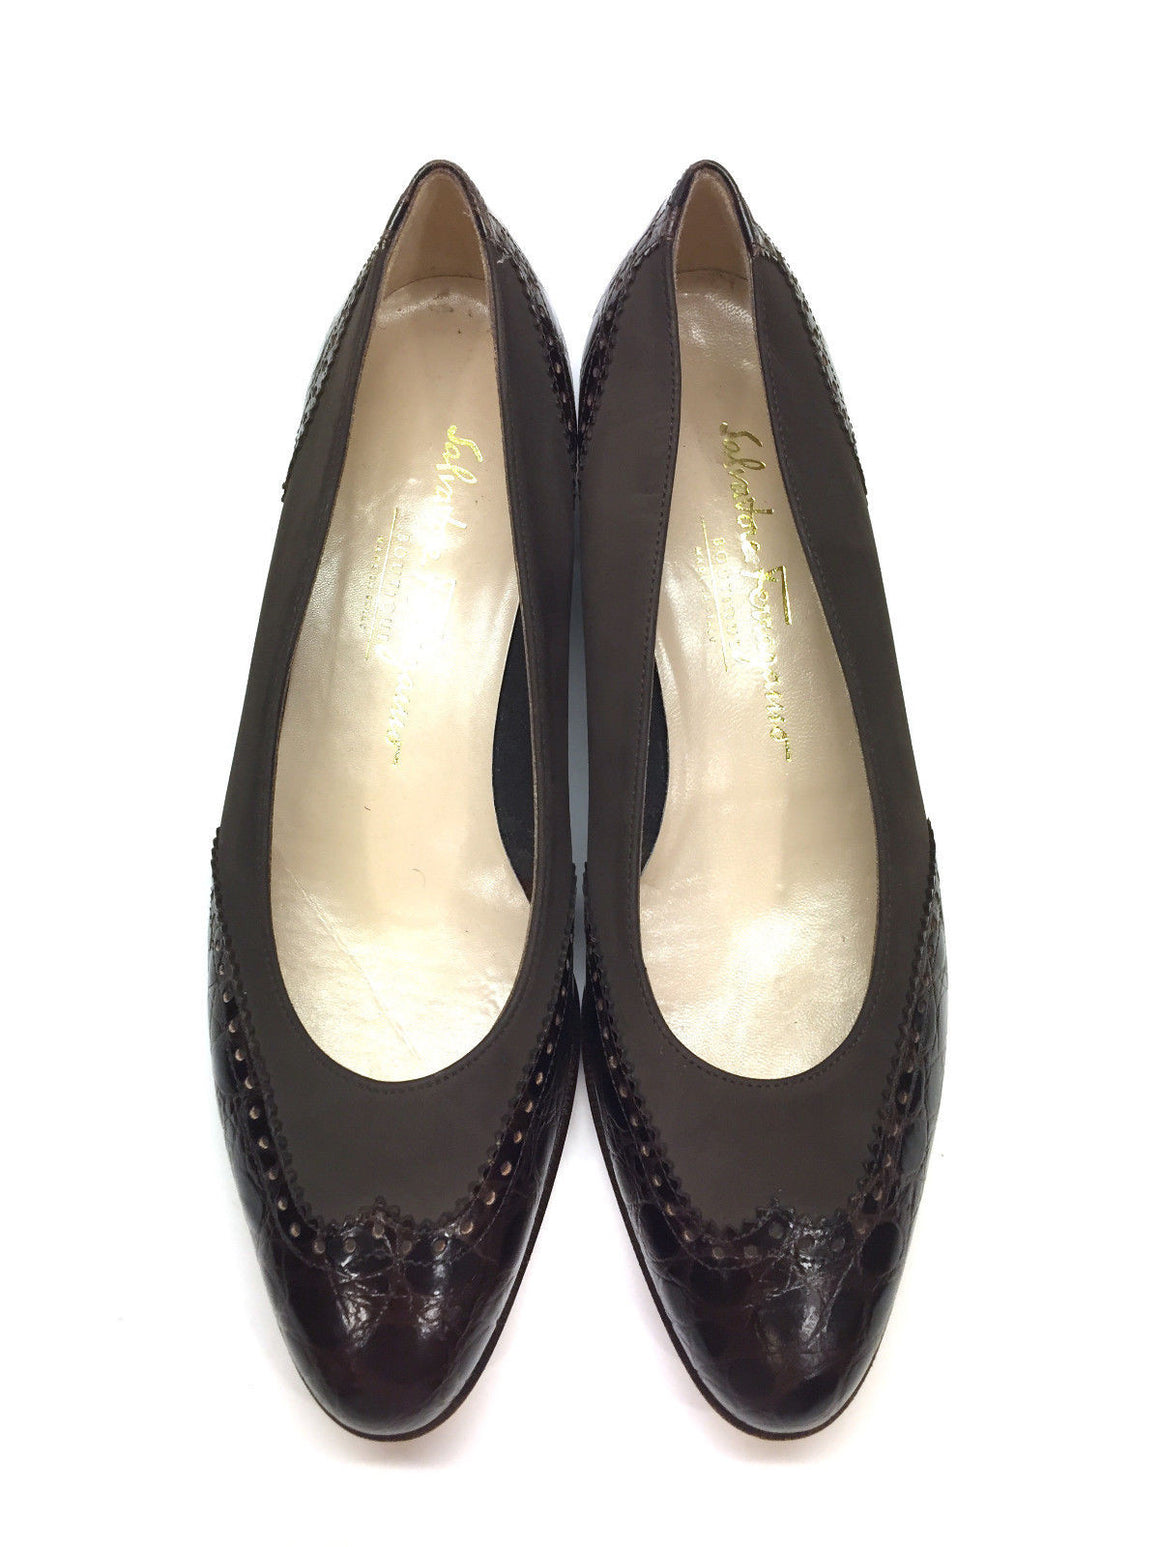 bisbiz.com FERRAGAMO Brown Suede Brown Croc Leather Angel Wing Flats Shoes Size: 38.5/8.5 - Bis Luxury Resale